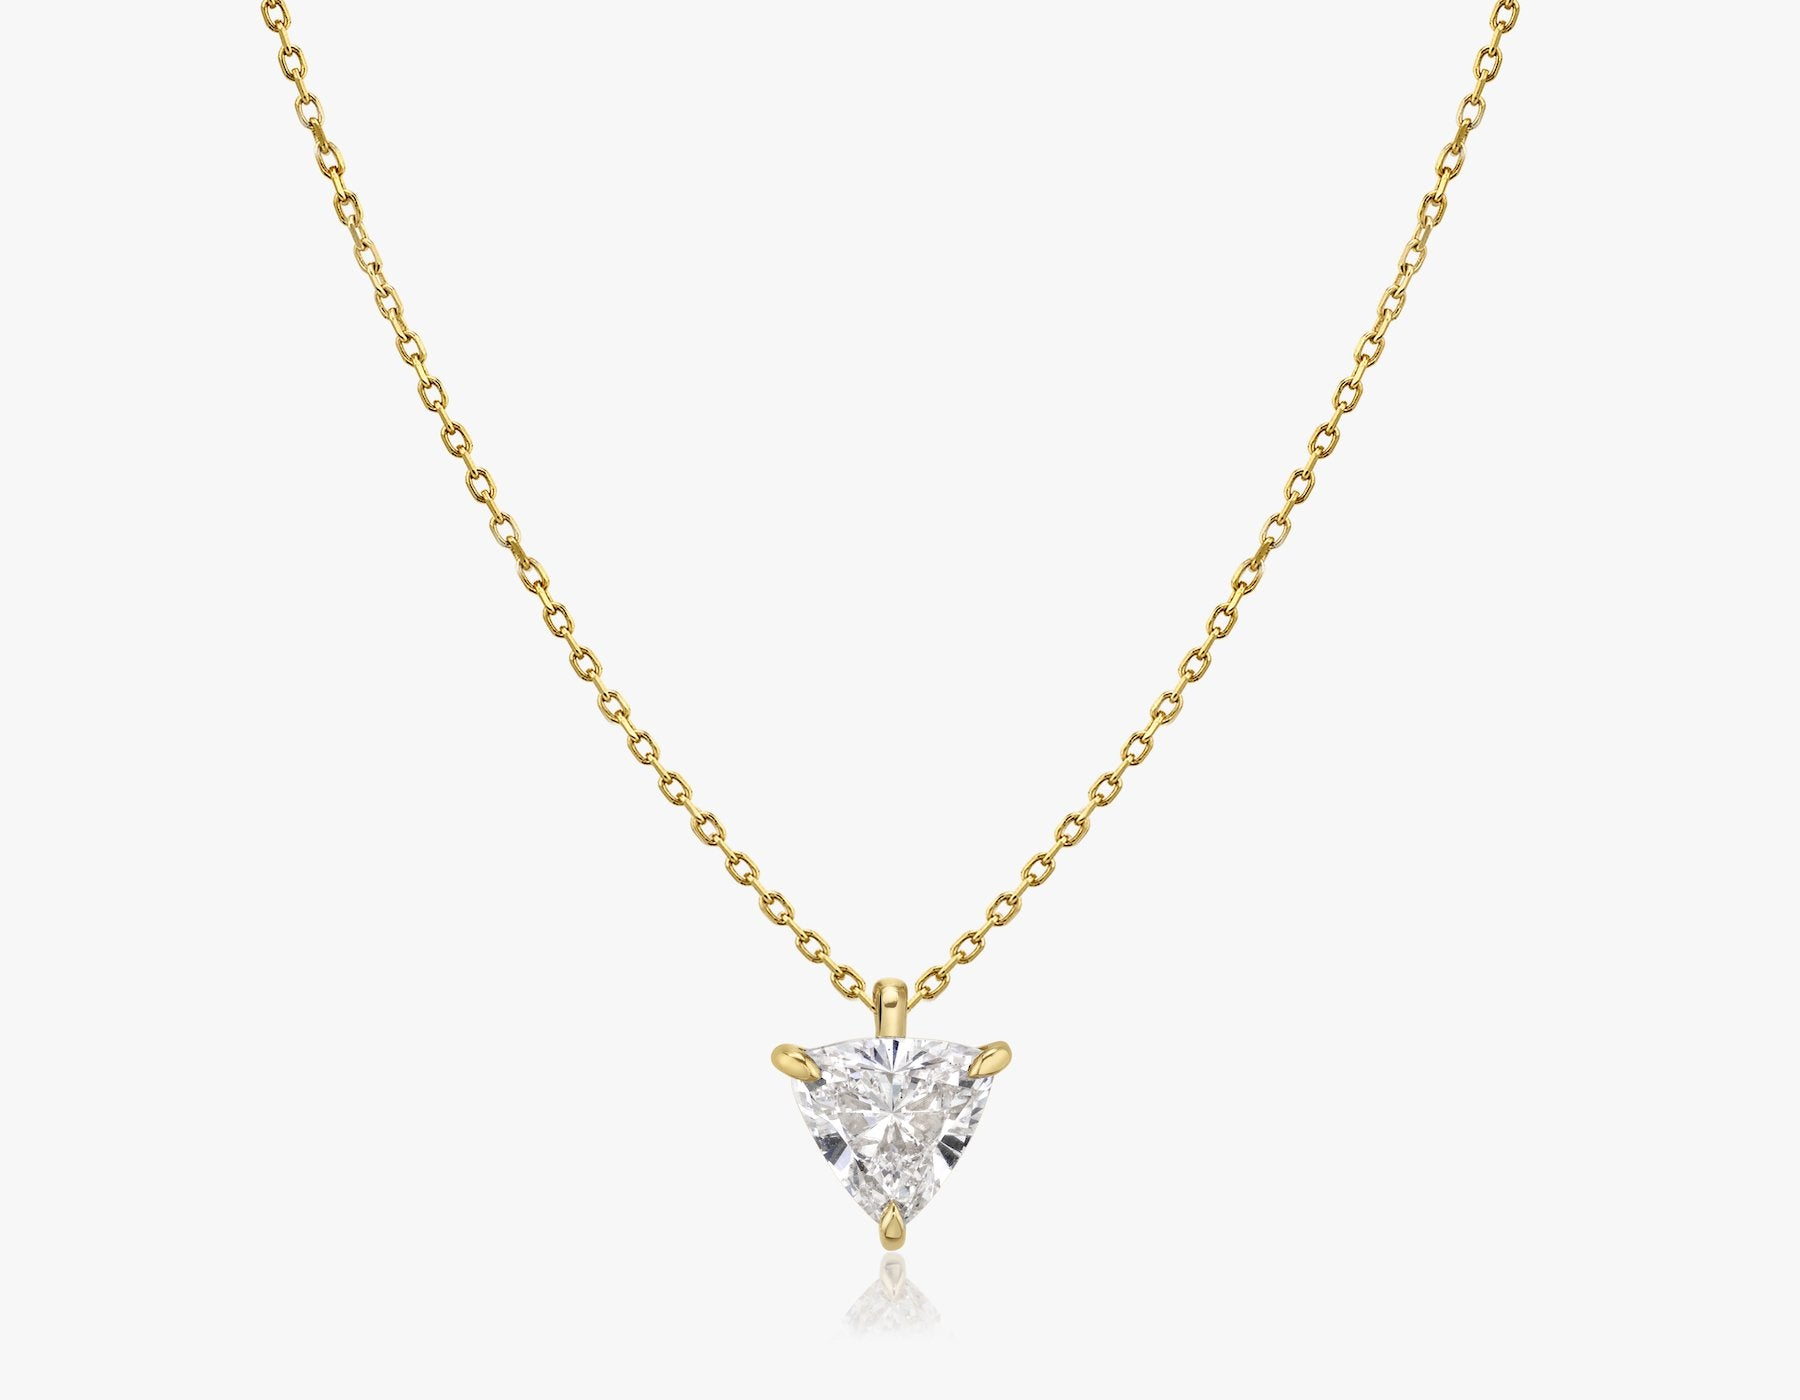 Vrai 14k solid gold Solitaire Trillion Diamond Pendant sustainably created triangle diamond prong set on simple chain necklace, 14K Yellow Gold